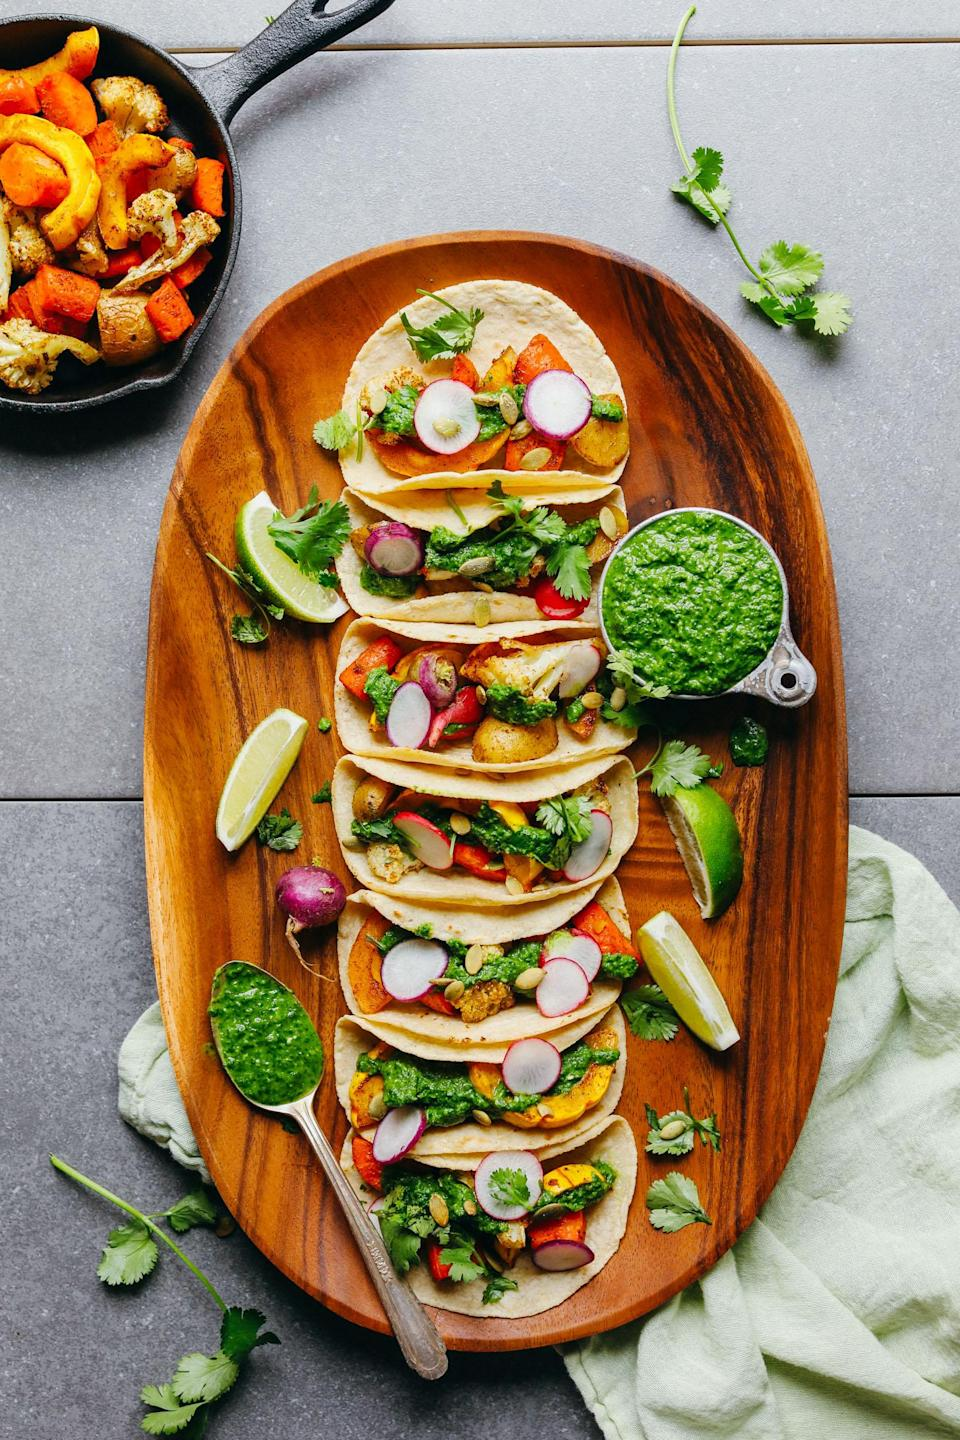 """<p>Chimichurri is good on practically anything, including the roasted veggies in these tacos.</p> <p>Get the recipe <a href=""""https://minimalistbaker.com/roasted-vegetable-tacos-chimichurri/"""" rel=""""nofollow noopener"""" target=""""_blank"""" data-ylk=""""slk:here"""" class=""""link rapid-noclick-resp"""">here</a>.</p>"""